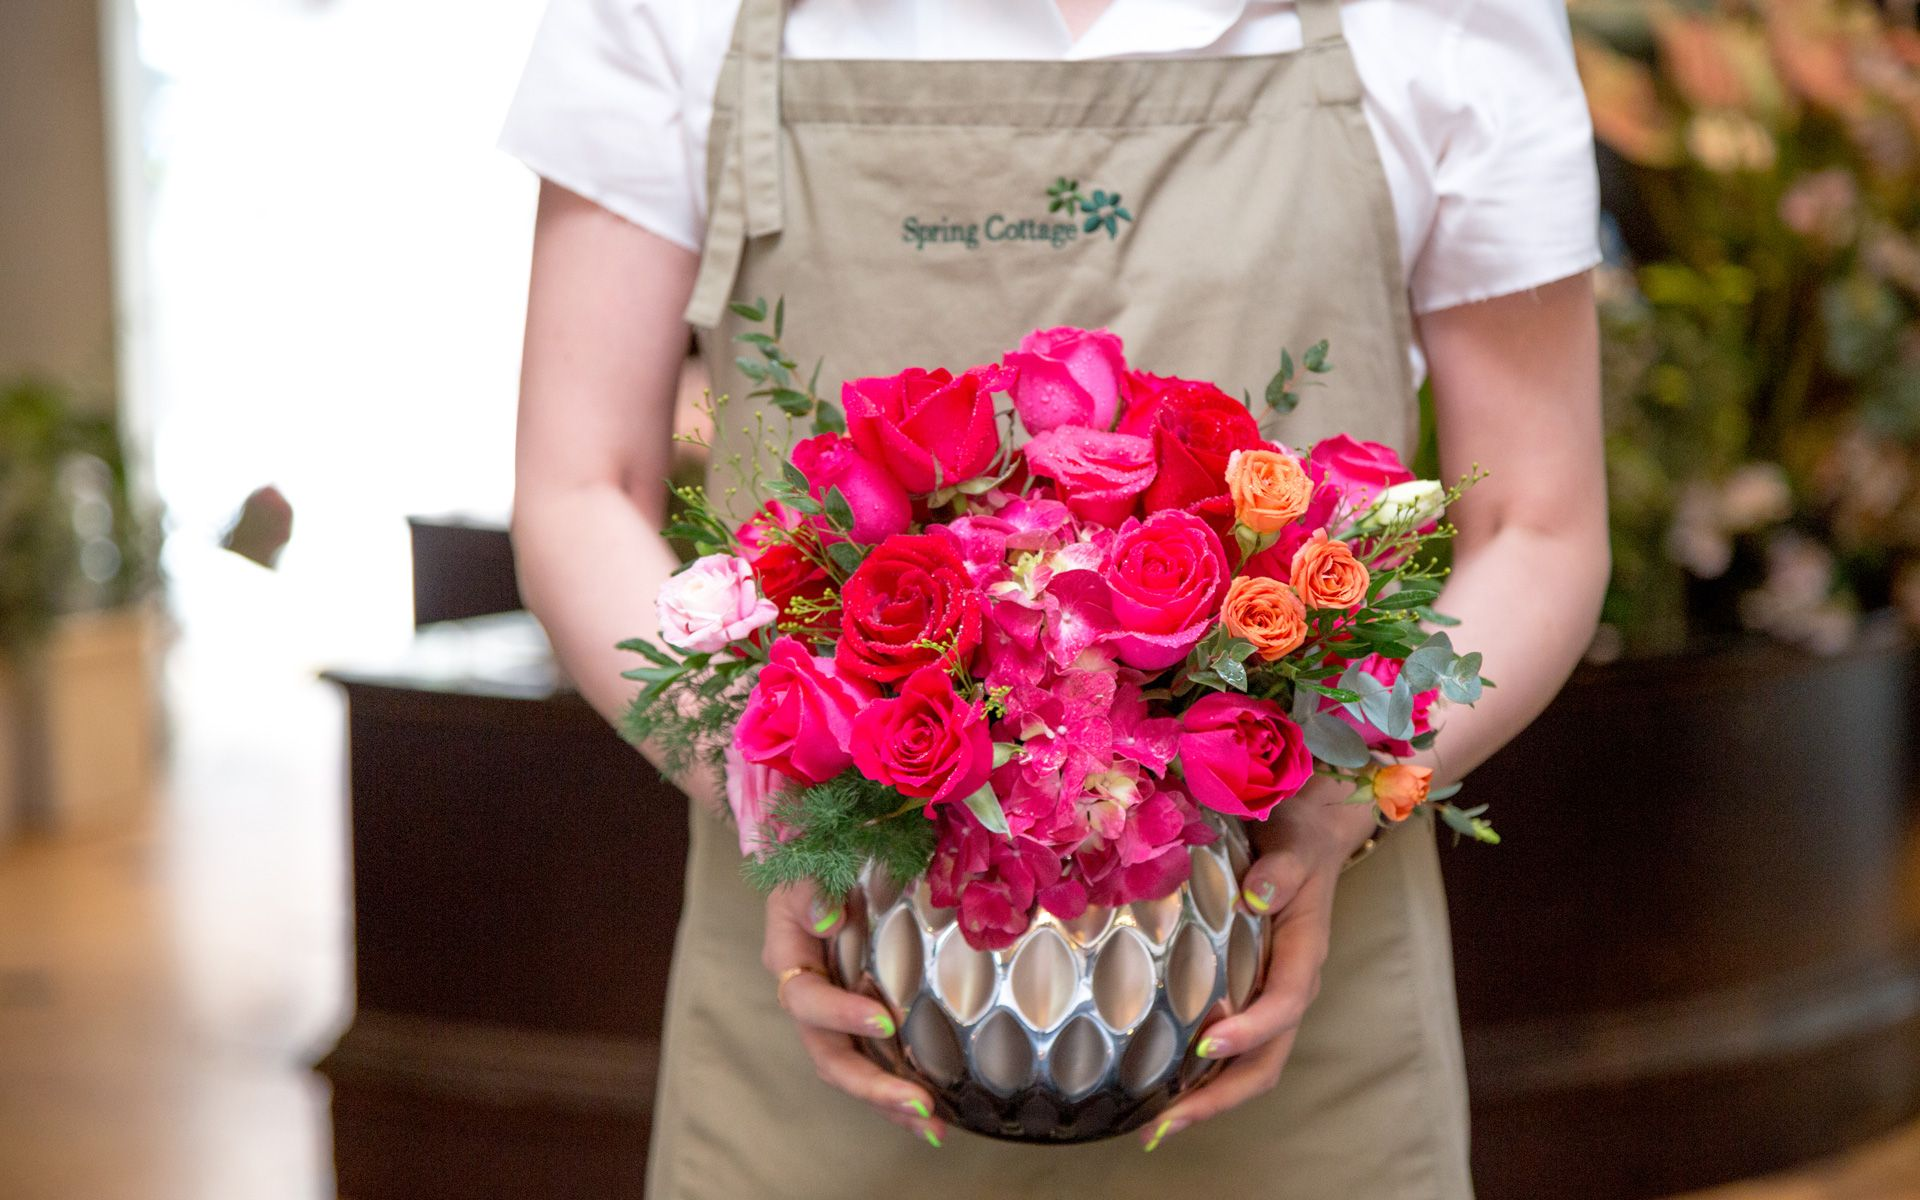 Say It With Flowers: 5 Fun Ways To Get Creative With Floral Gifts